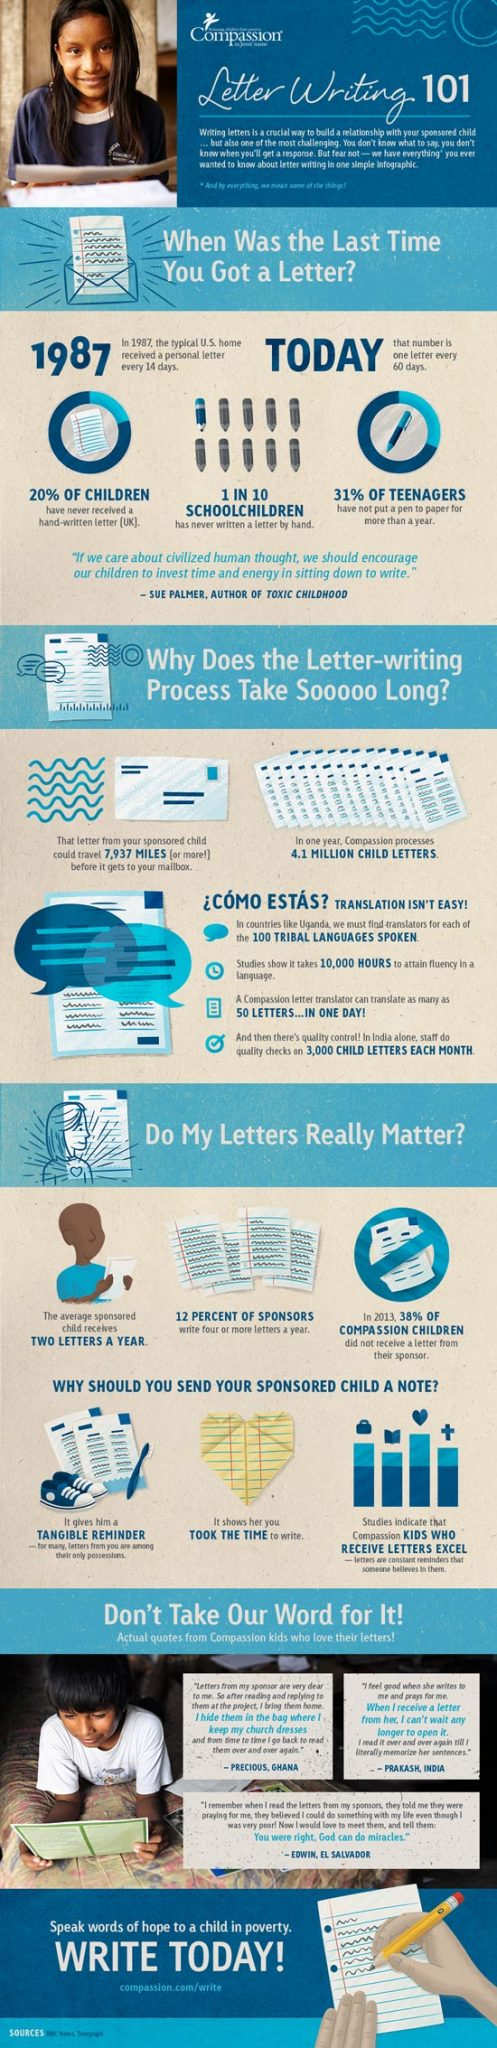 letter-writing-101-preview